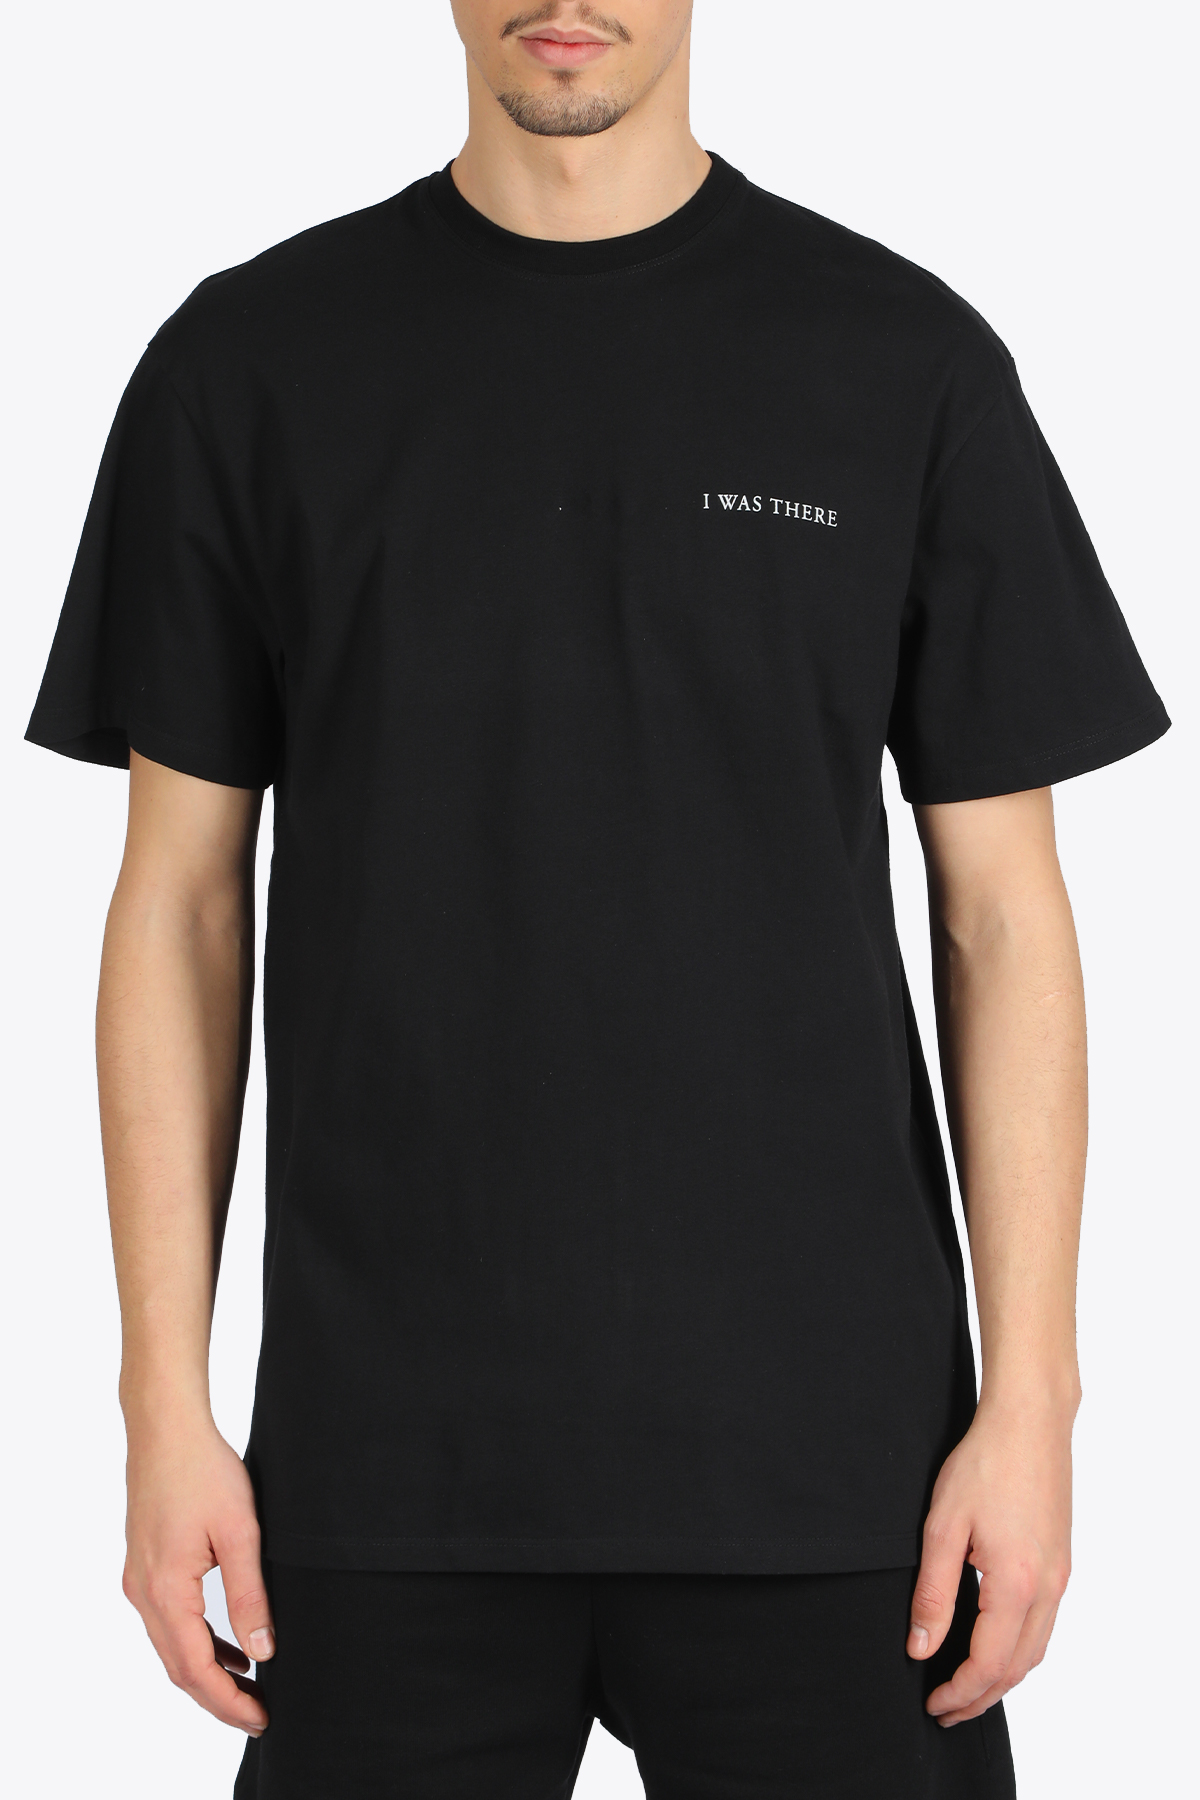 T-SHIRT I WAS THERE IH NOM UH NIT   8   NUS20210 T-SHIRT I WAS THERE009